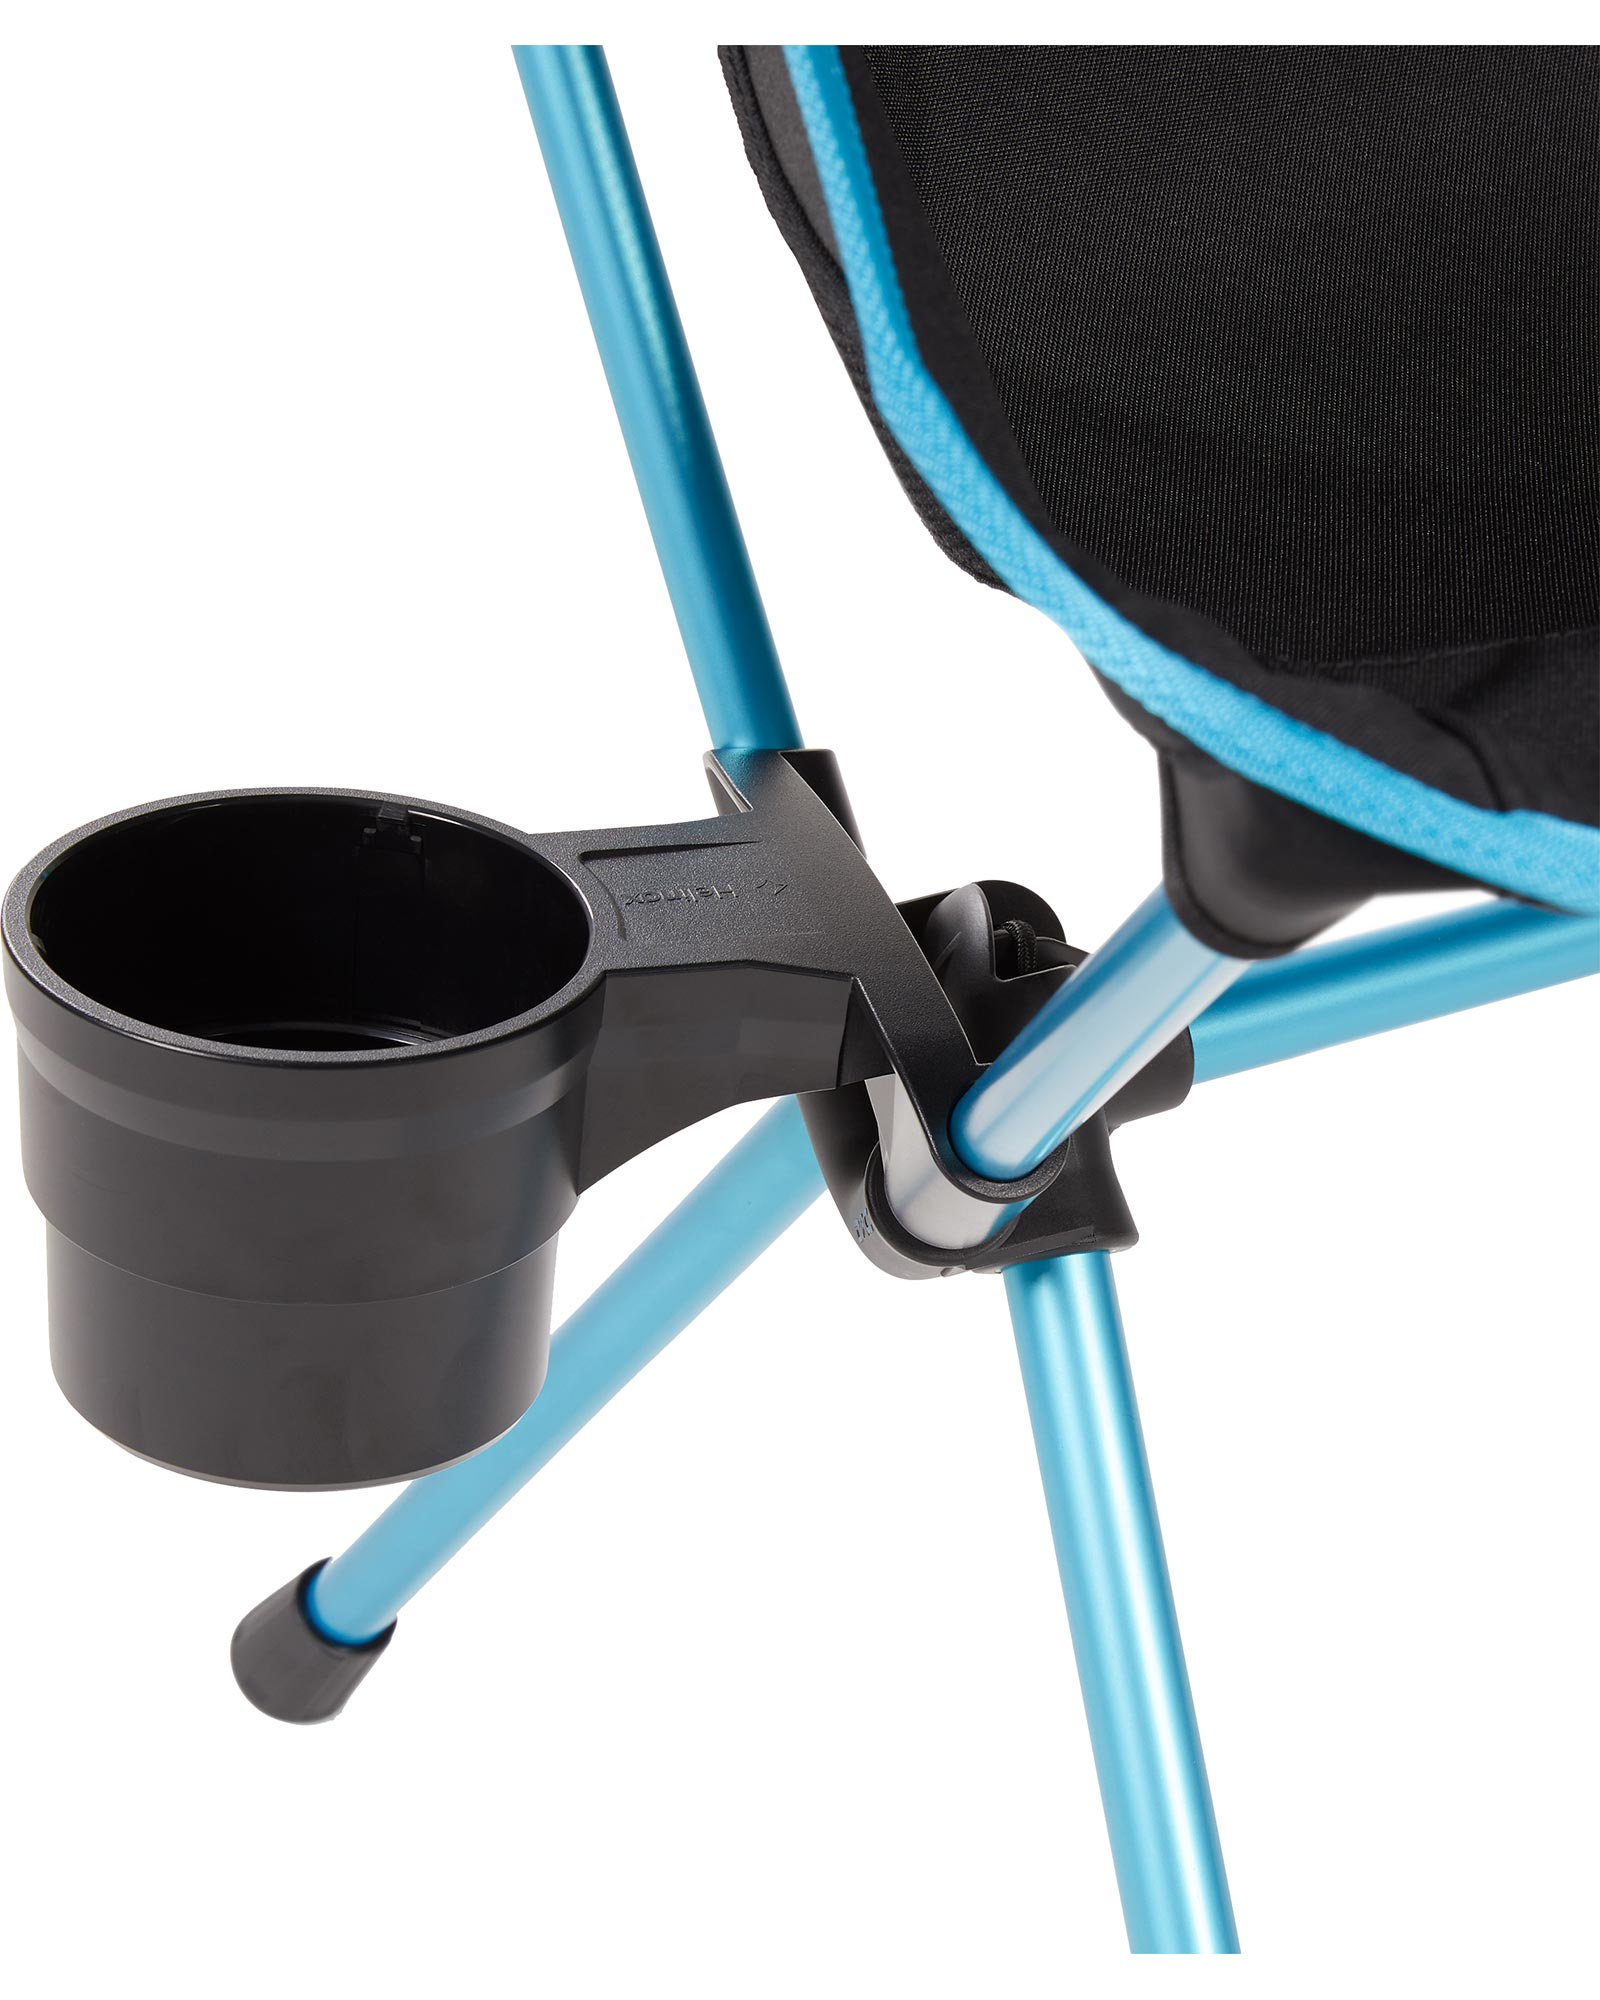 Product image of Helinox Cup Holder